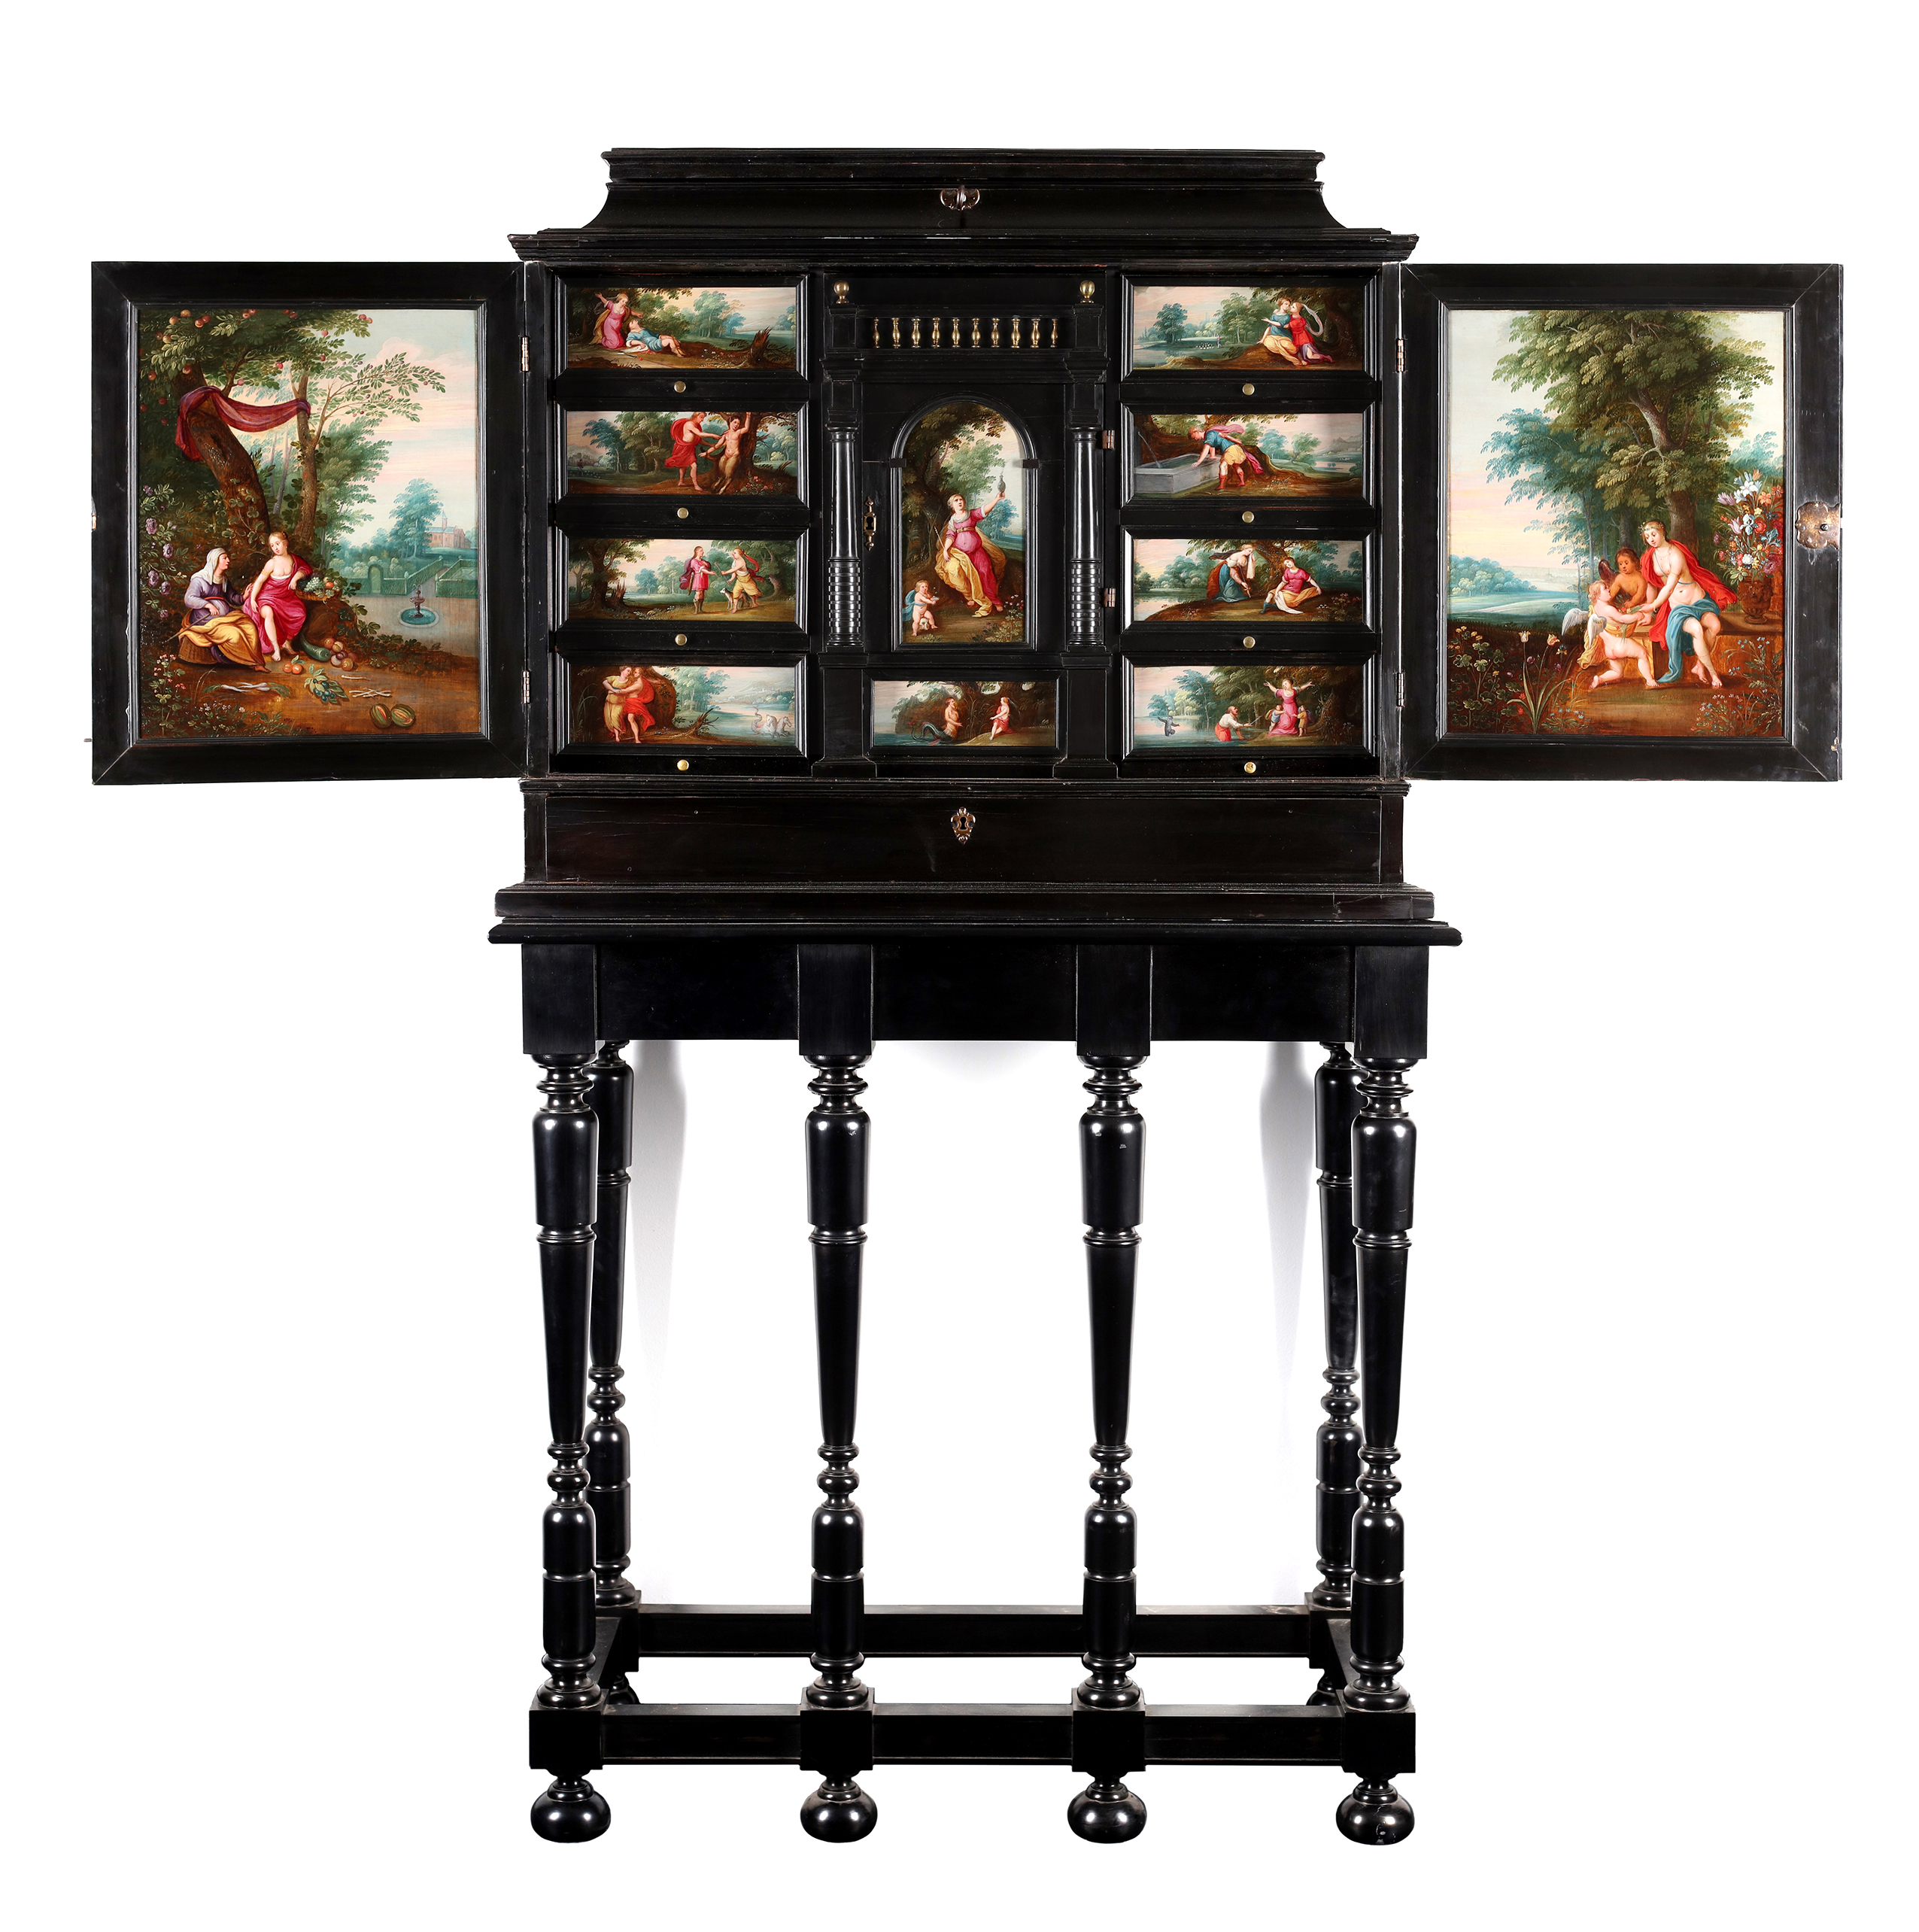 Cabinet on stand decorated with 13 paintings representing the metamorphoses of Ovidius